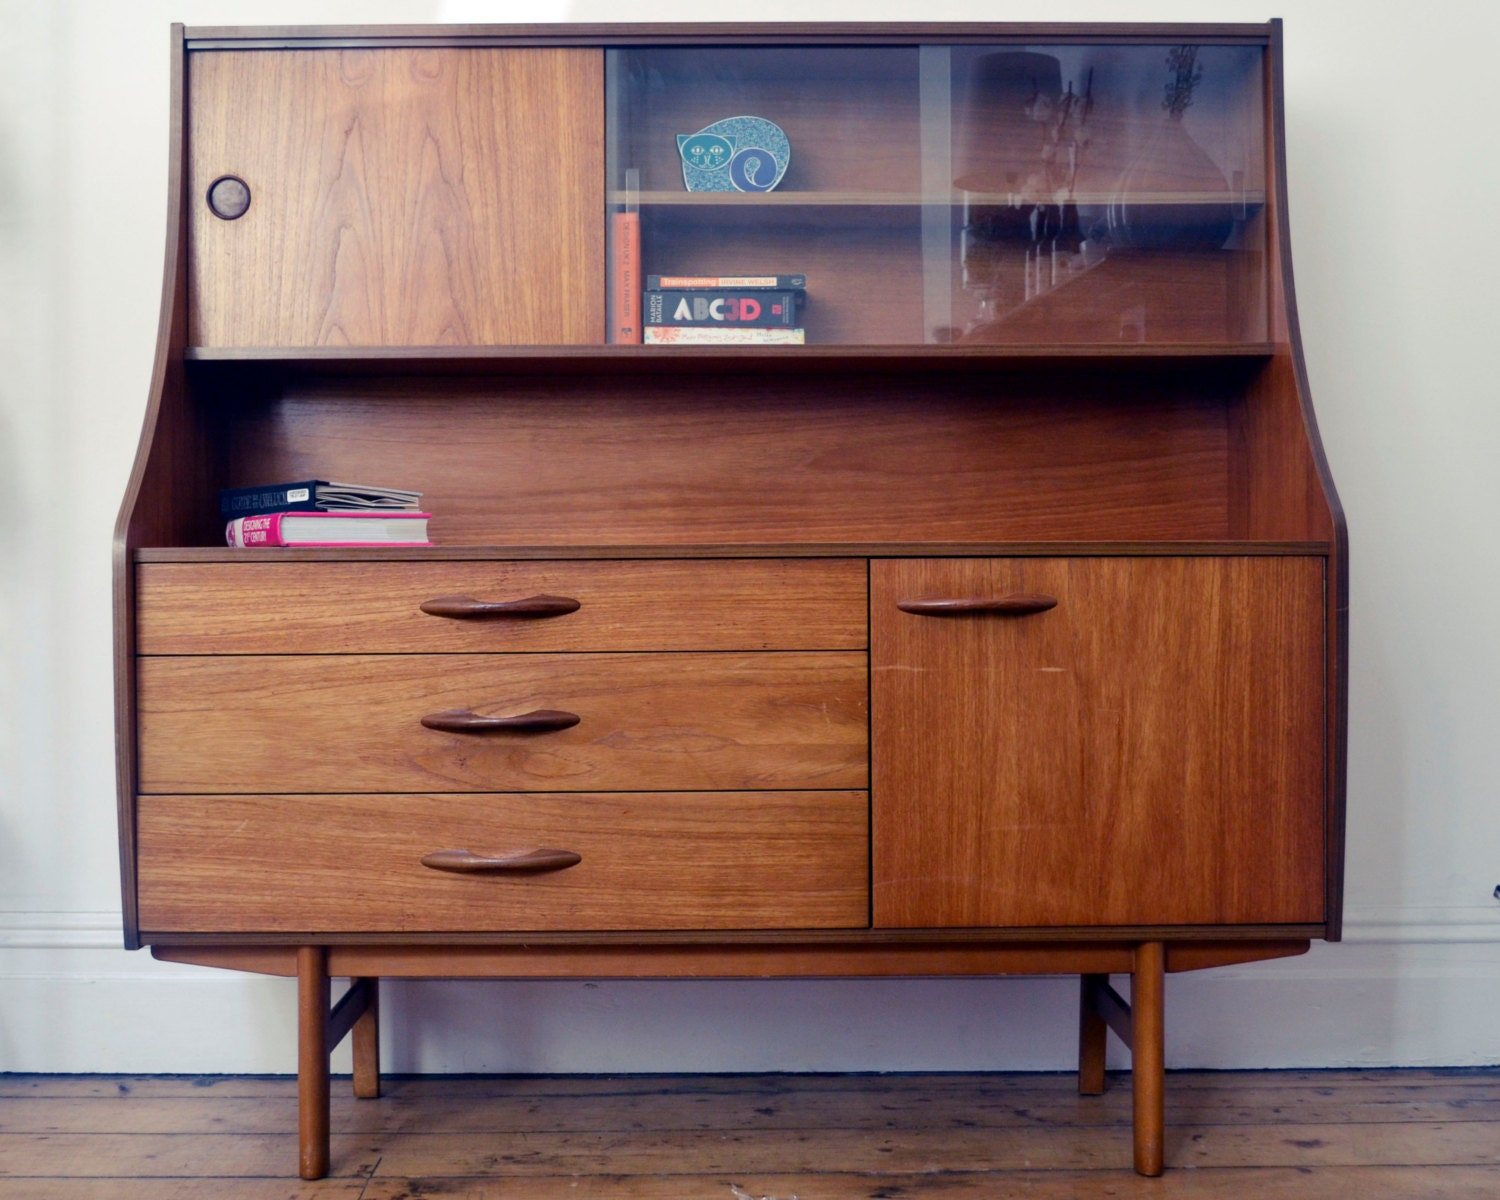 Vintage retro avalon highboard bureau sideboard mid century design 1960s 19 - Bureau design vintage ...